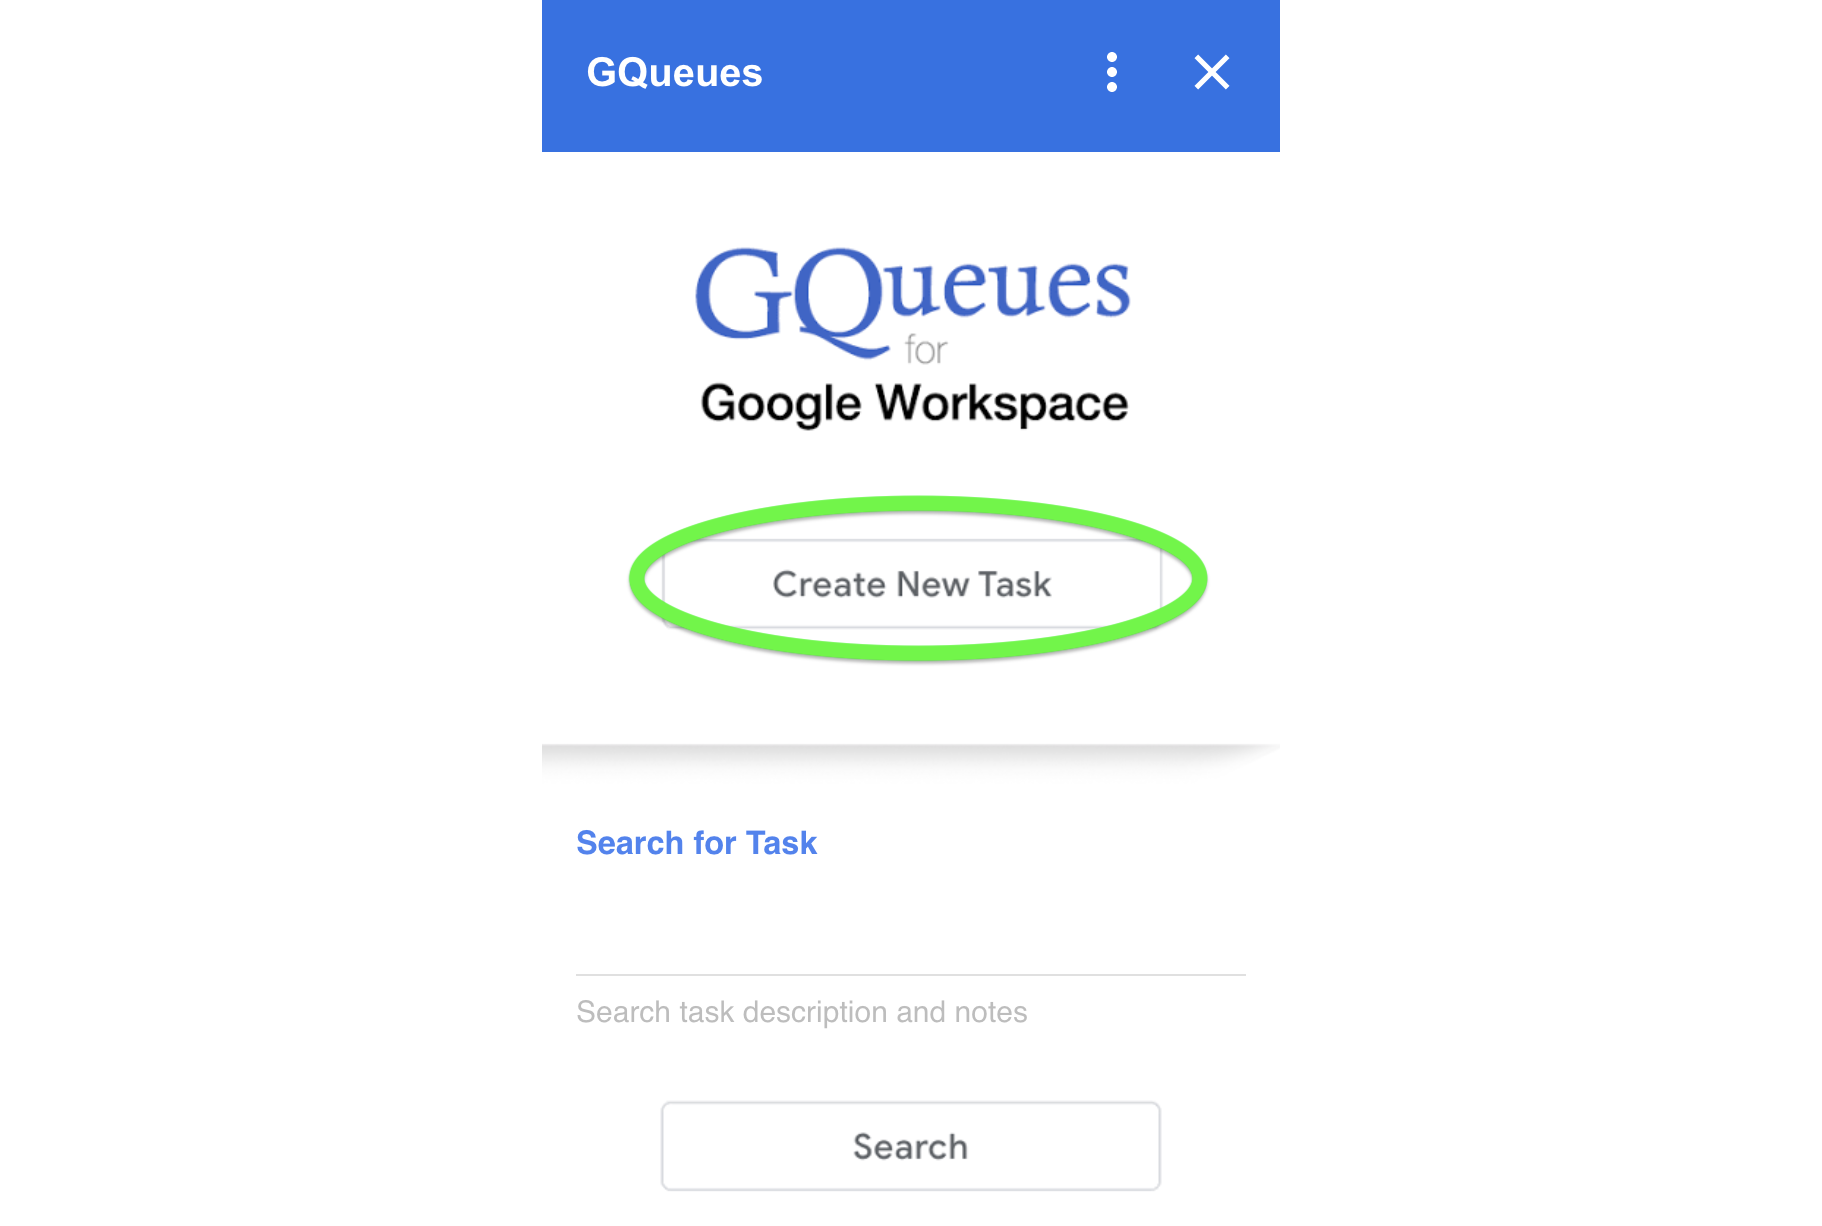 Select Create New Task from the add-on home screen to add a new task in your GQueues account